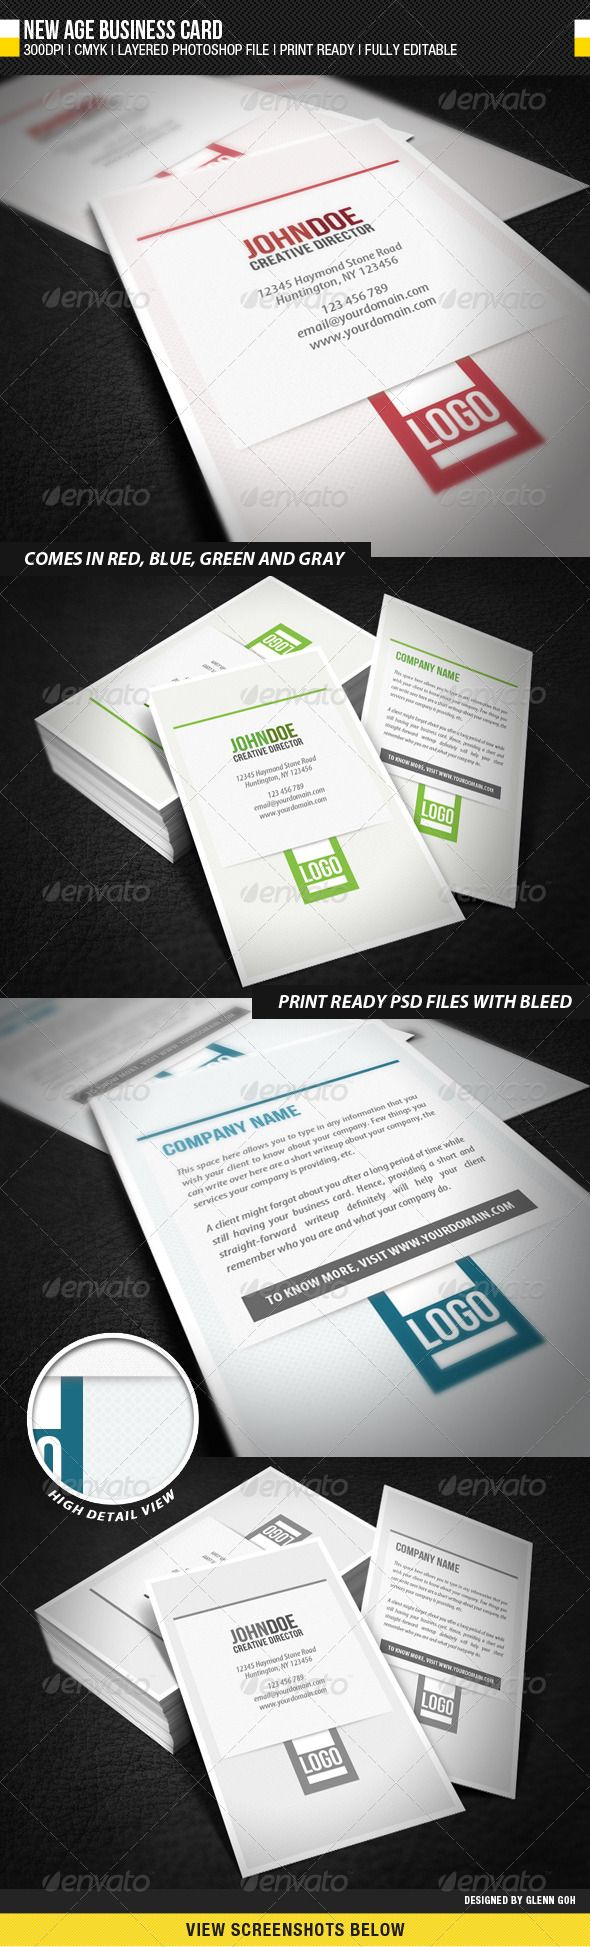 New Age Business Card   Business cards, Business and Print templates